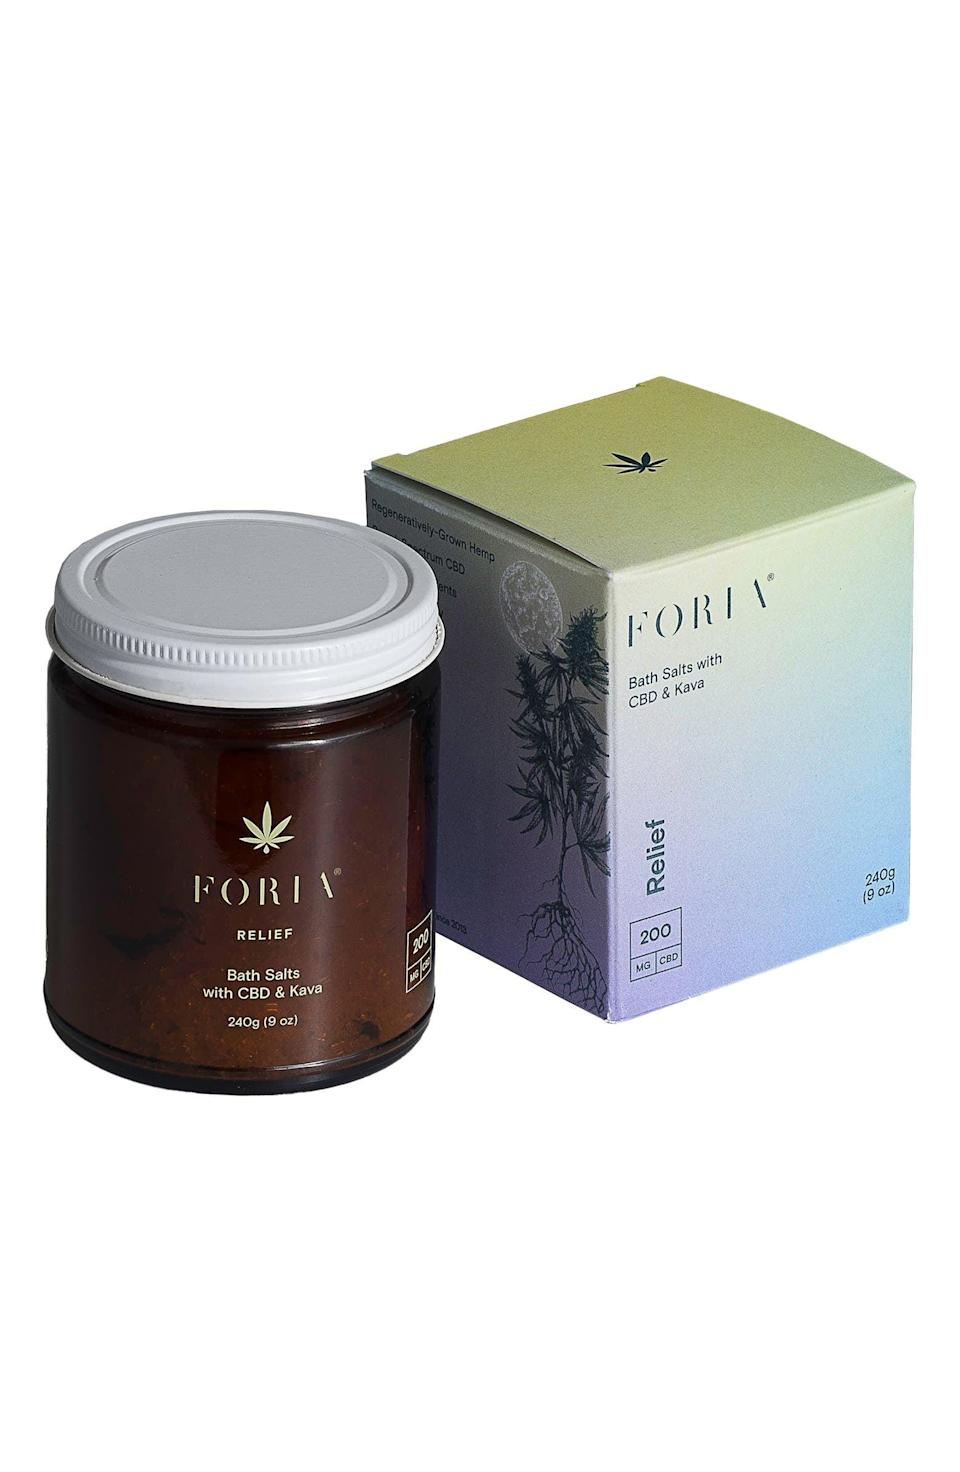 <p>If you have dealt with body pains, give your body the break it needs with the soothing <span>Foria Relief Bath Salts with CBD &amp; Kava</span> ($52).</p>